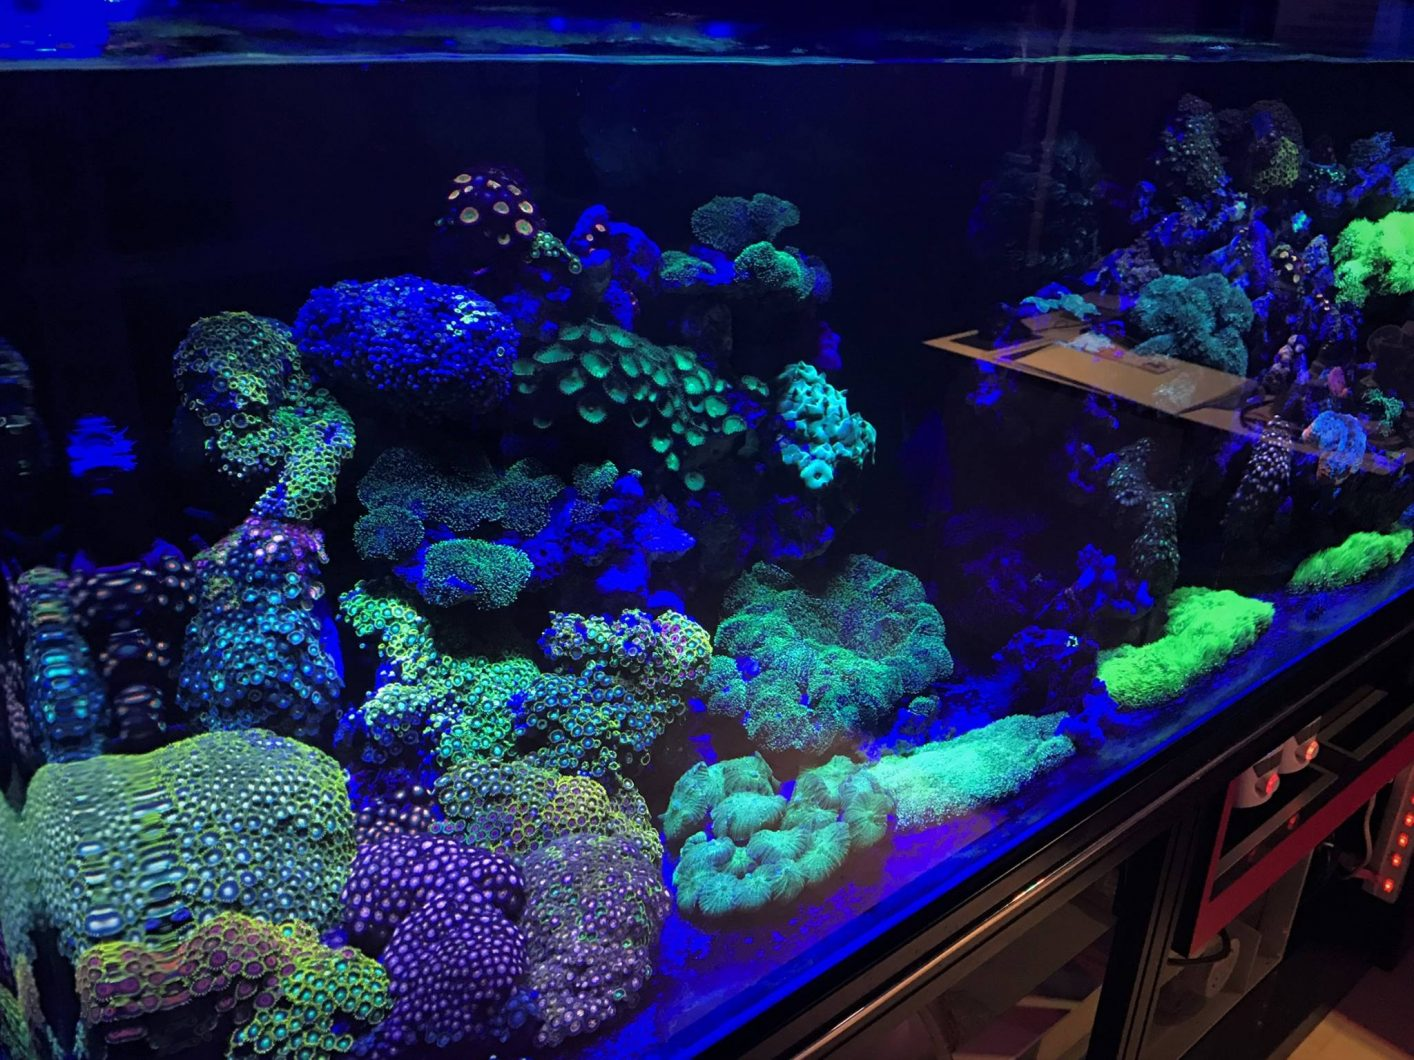 Night Aquarium View_LED